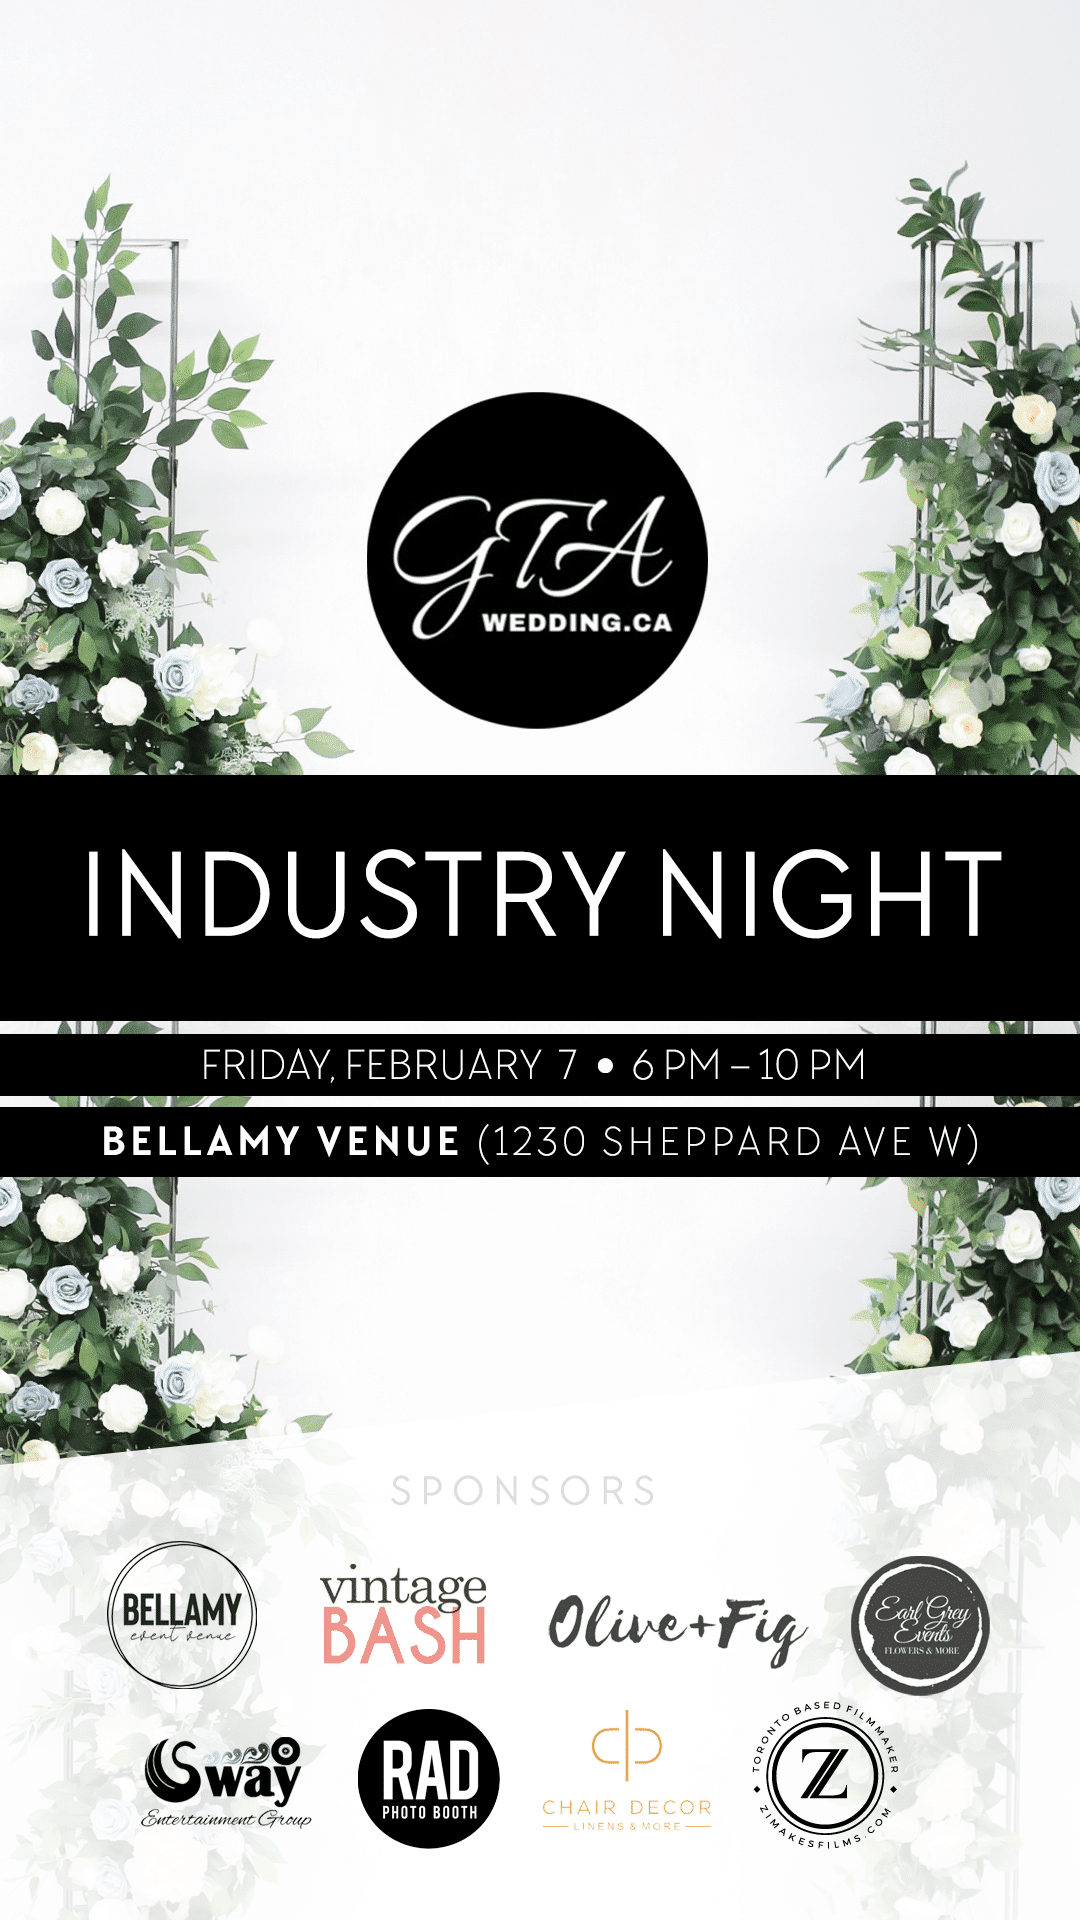 GTA Wedding Inc. Industry Night